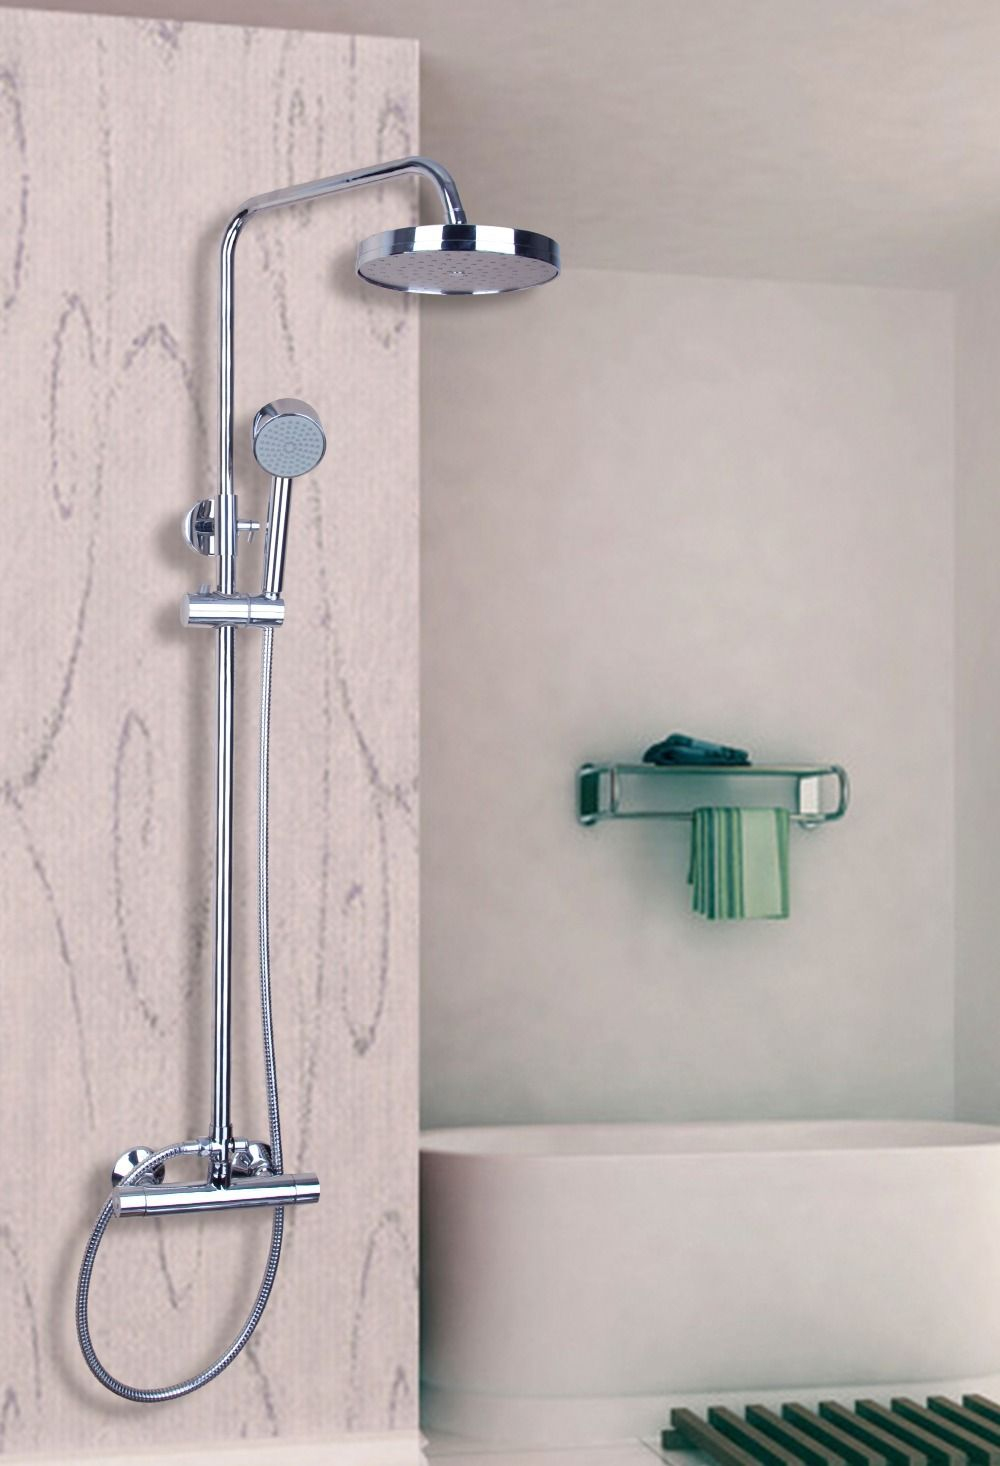 rain shower head bathtub. 53309 New 8\ Rain Shower Head Bathtub A